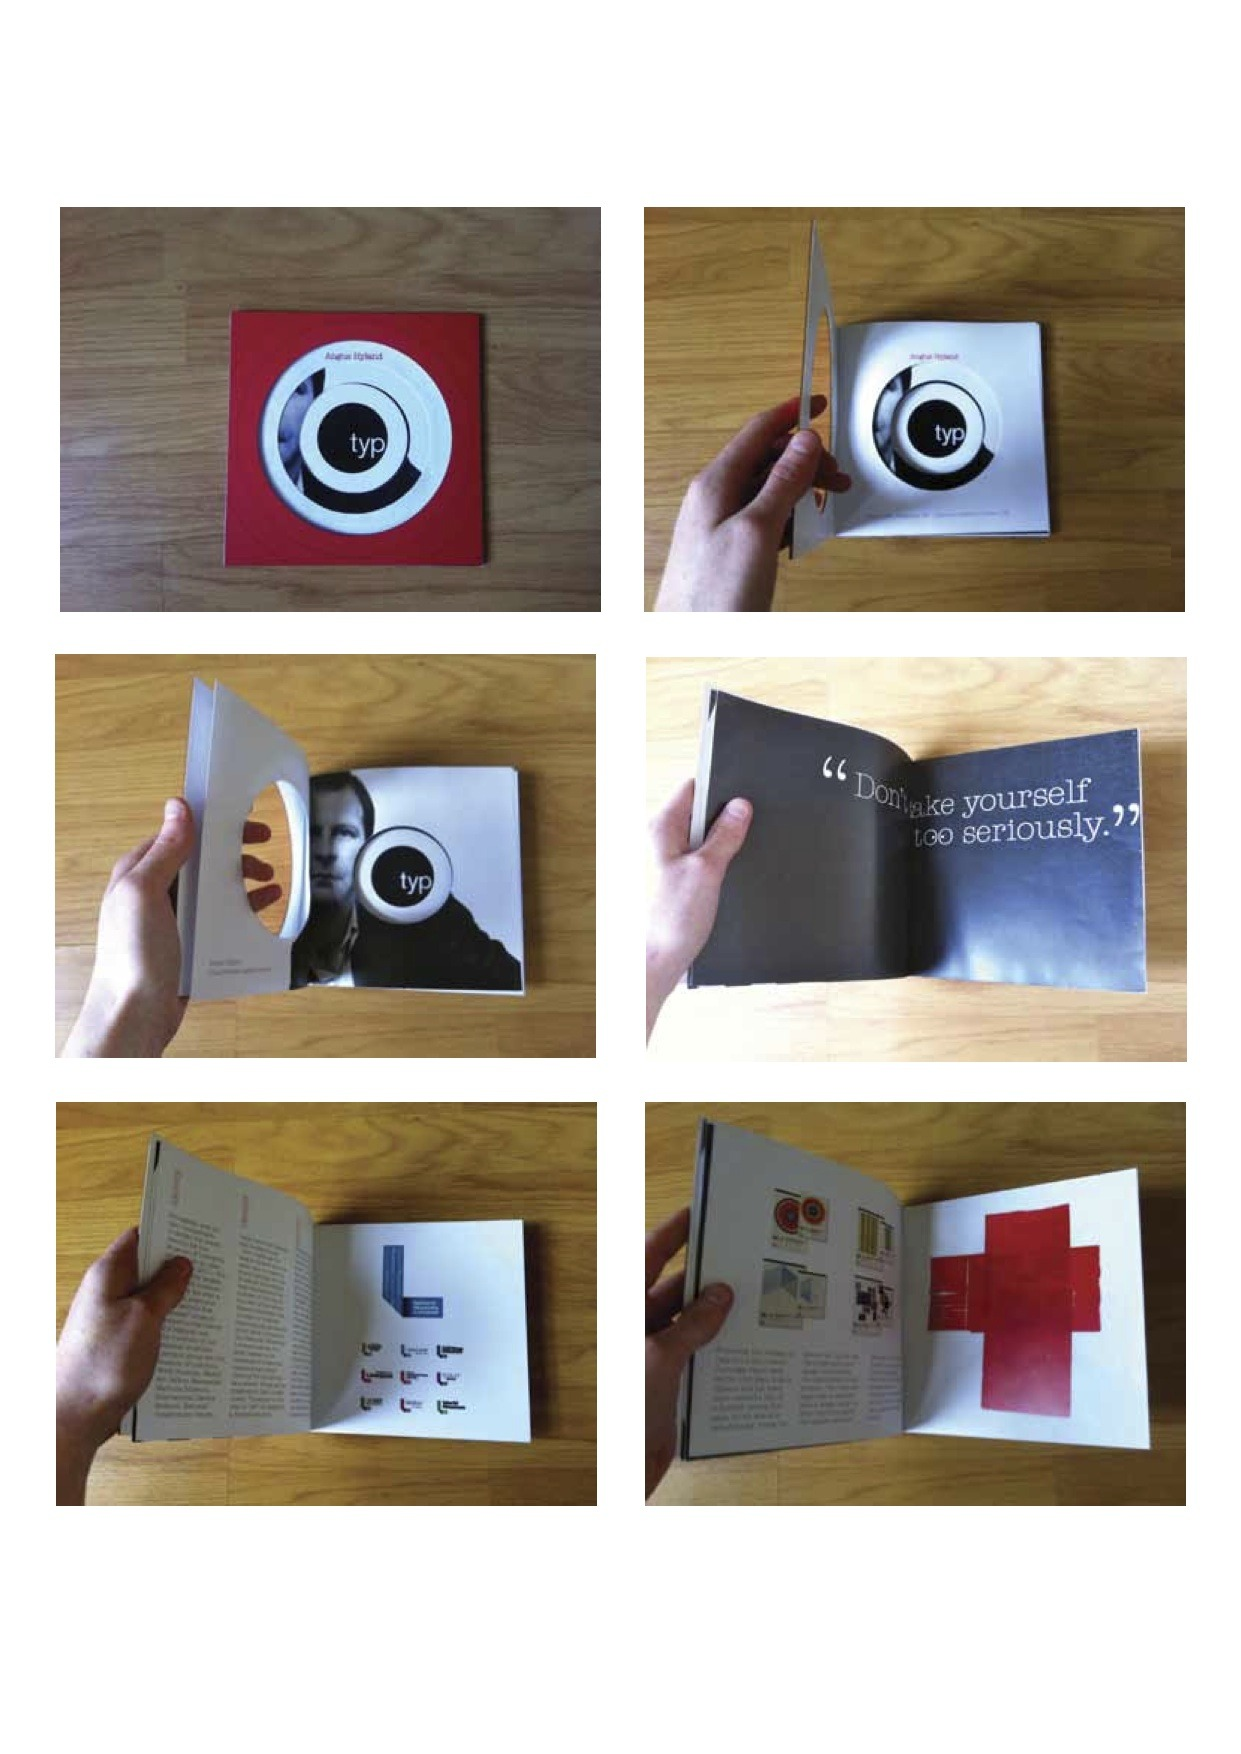 Photographs of my Typo Circle supplements.